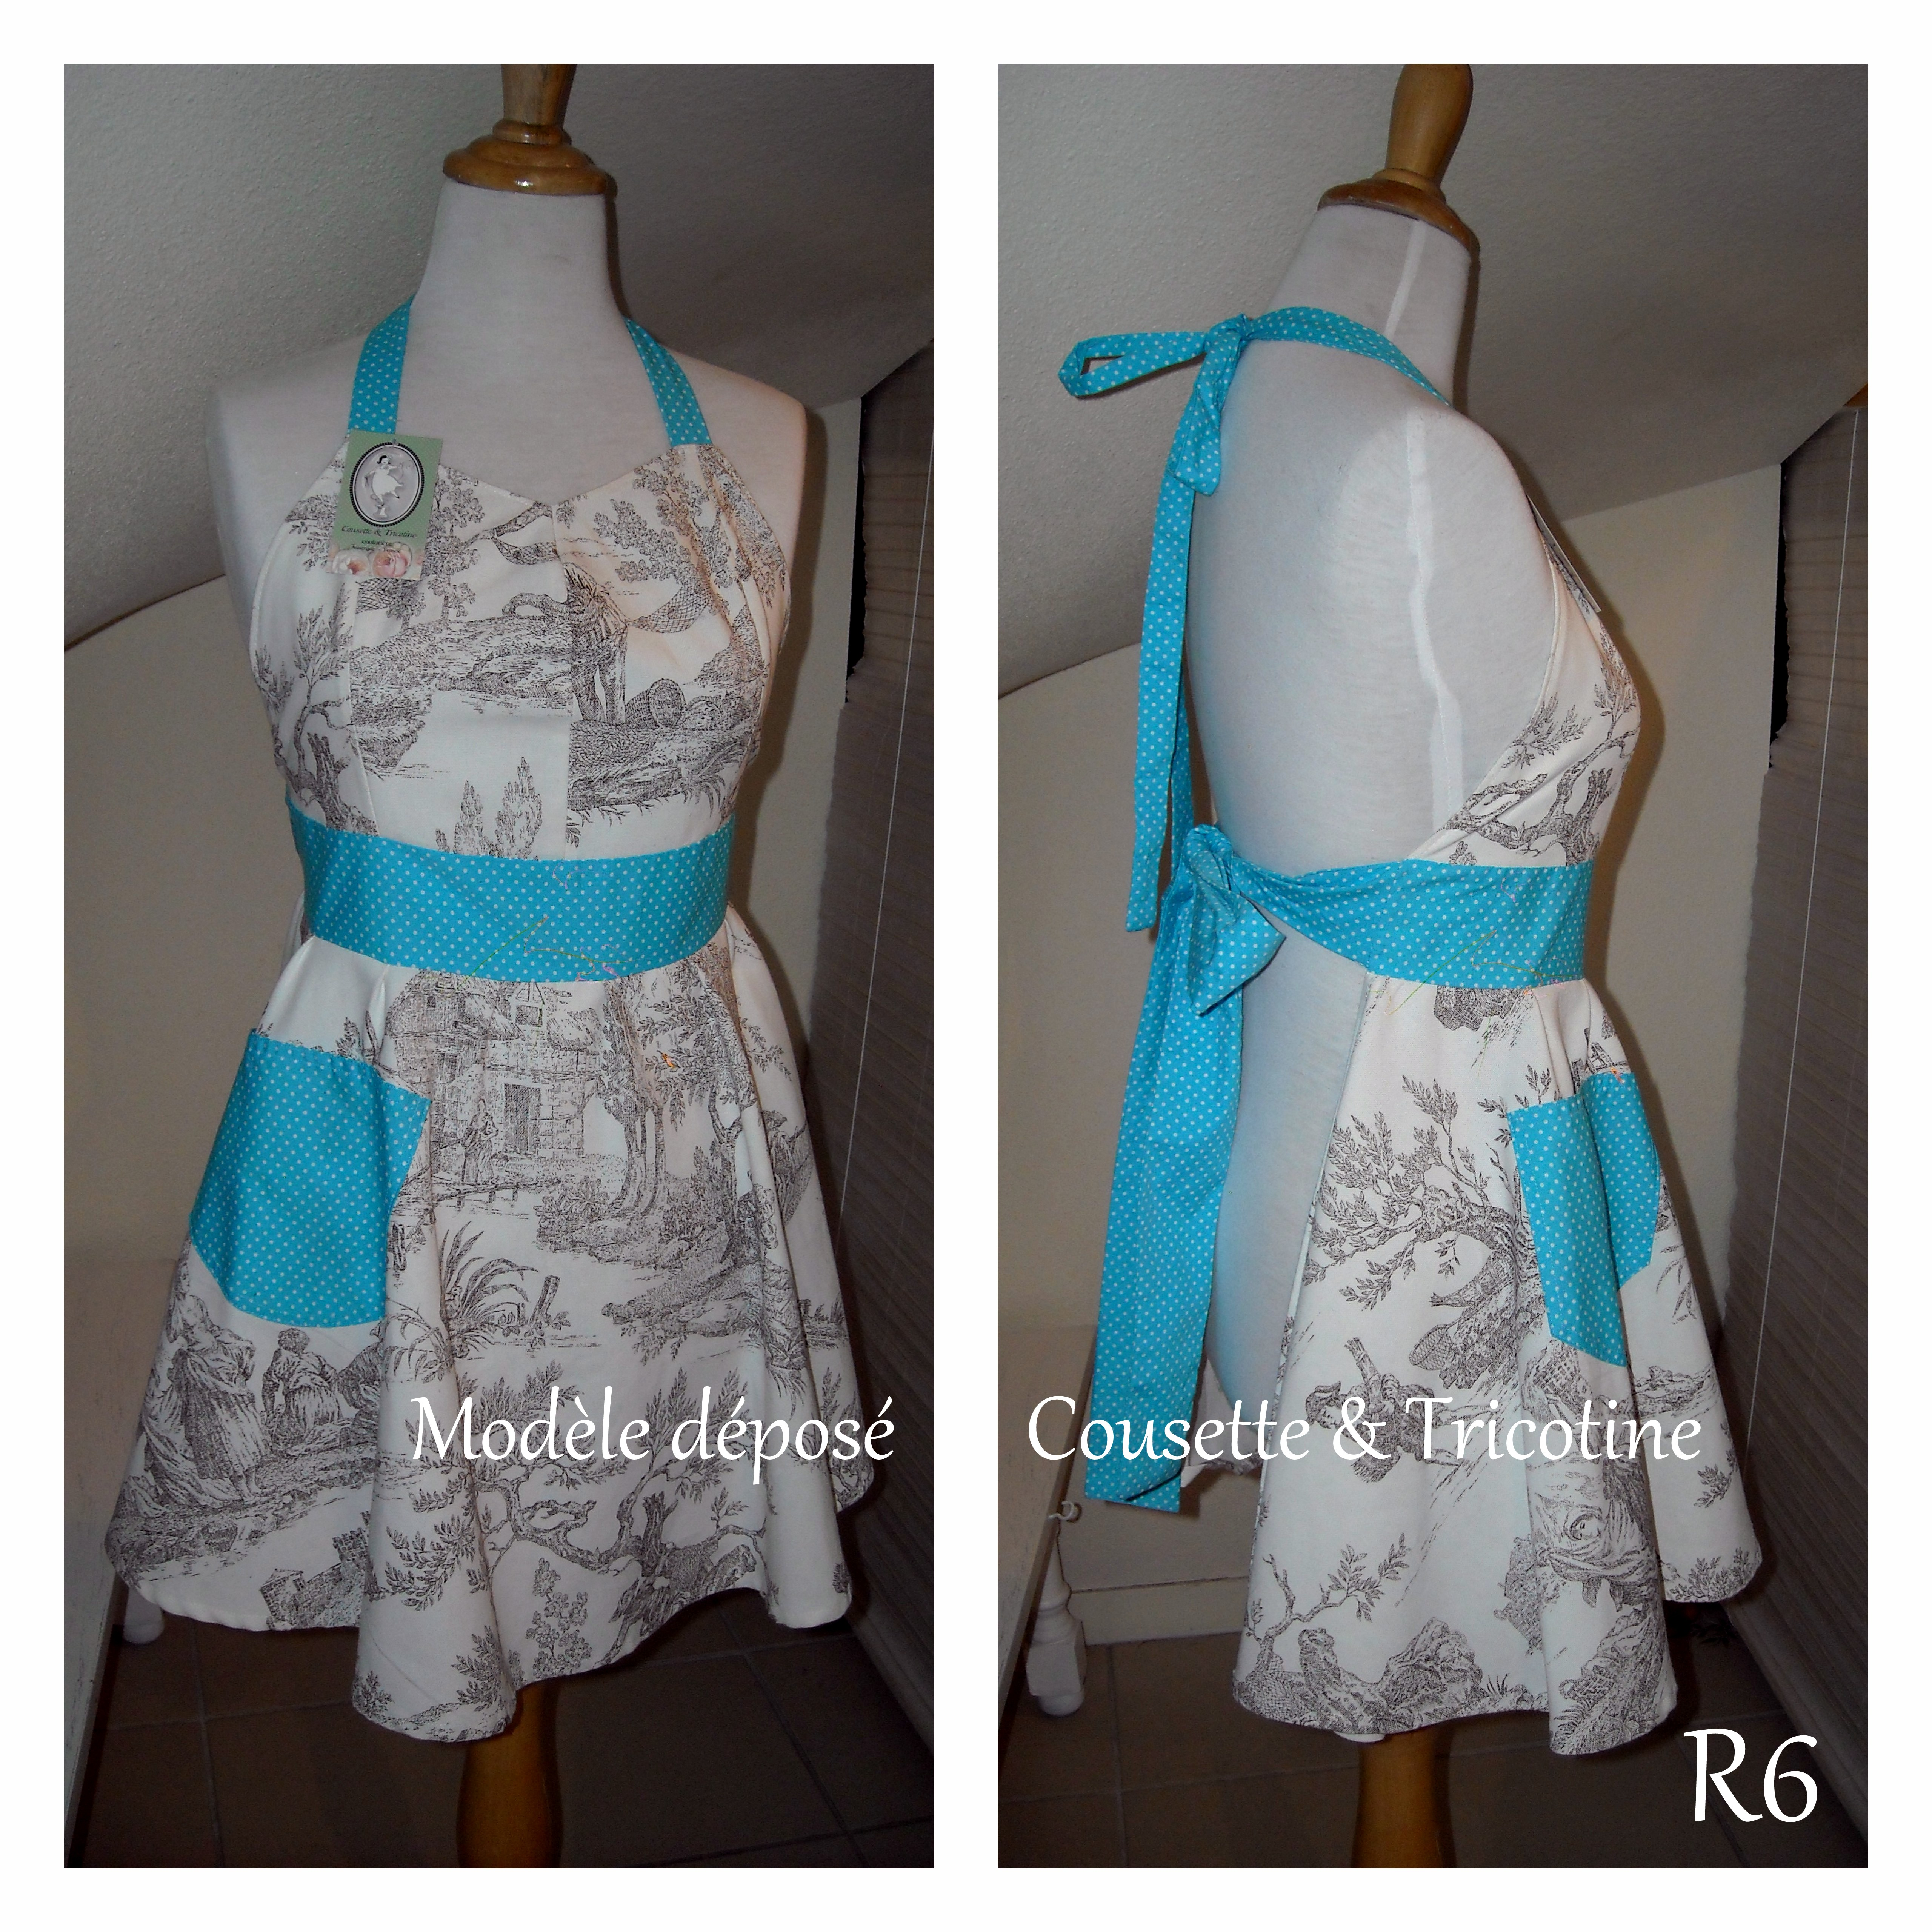 Tablier robe R6 Chateaugay (3).jpg